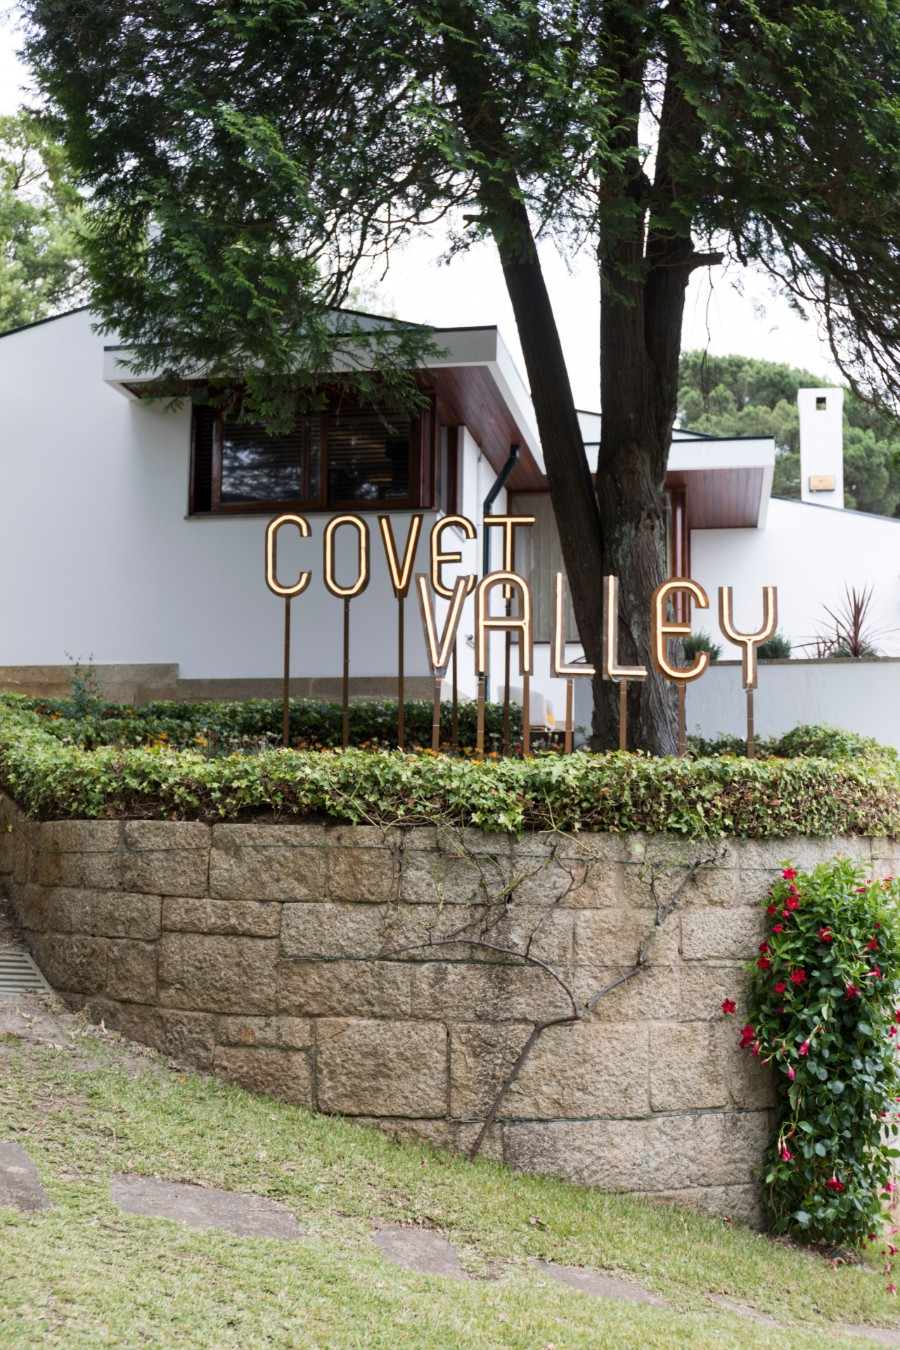 Covet Valley - Nostalgic Home in a Timeless Place covet valley Covet Valley – Nostalgic Home in a Timeless Place Covet Valley Nostalgic Home in a Timeless Place covet valley 1